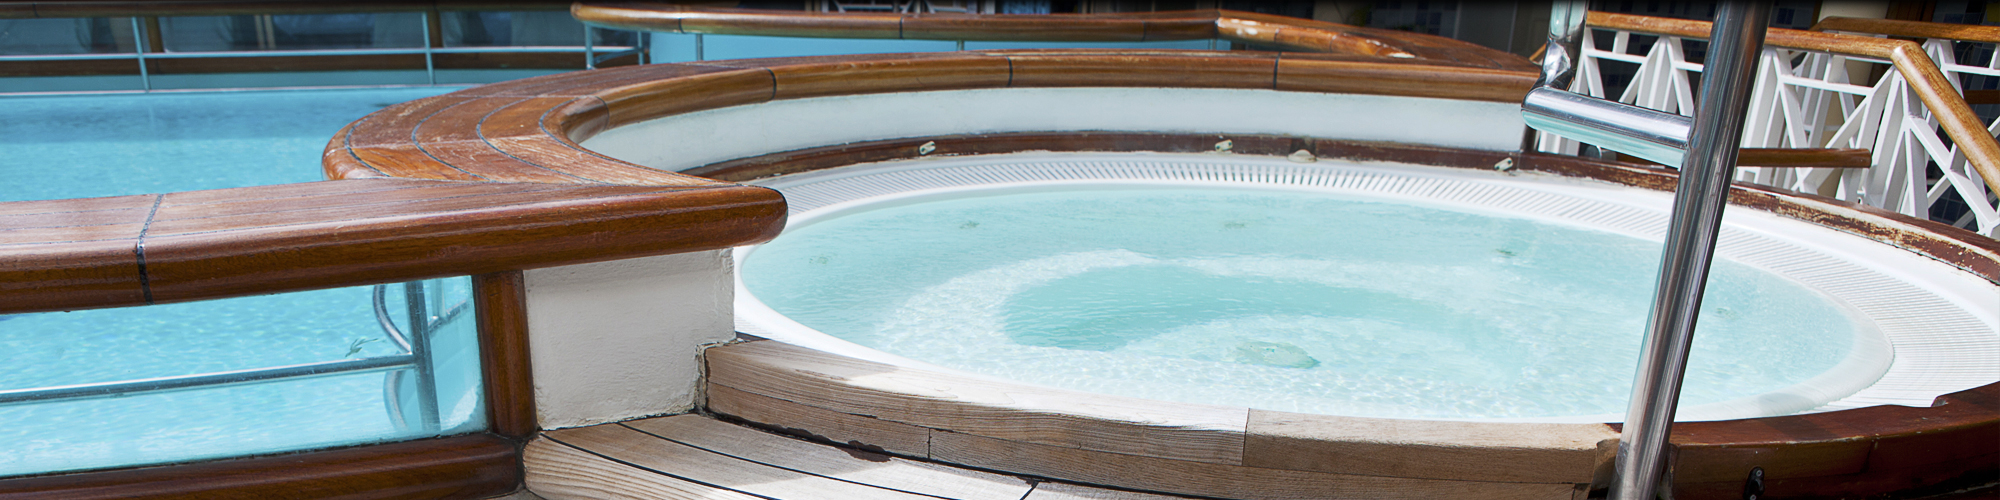 round step hot spa z uk inflatable tub chemical lay delivery free